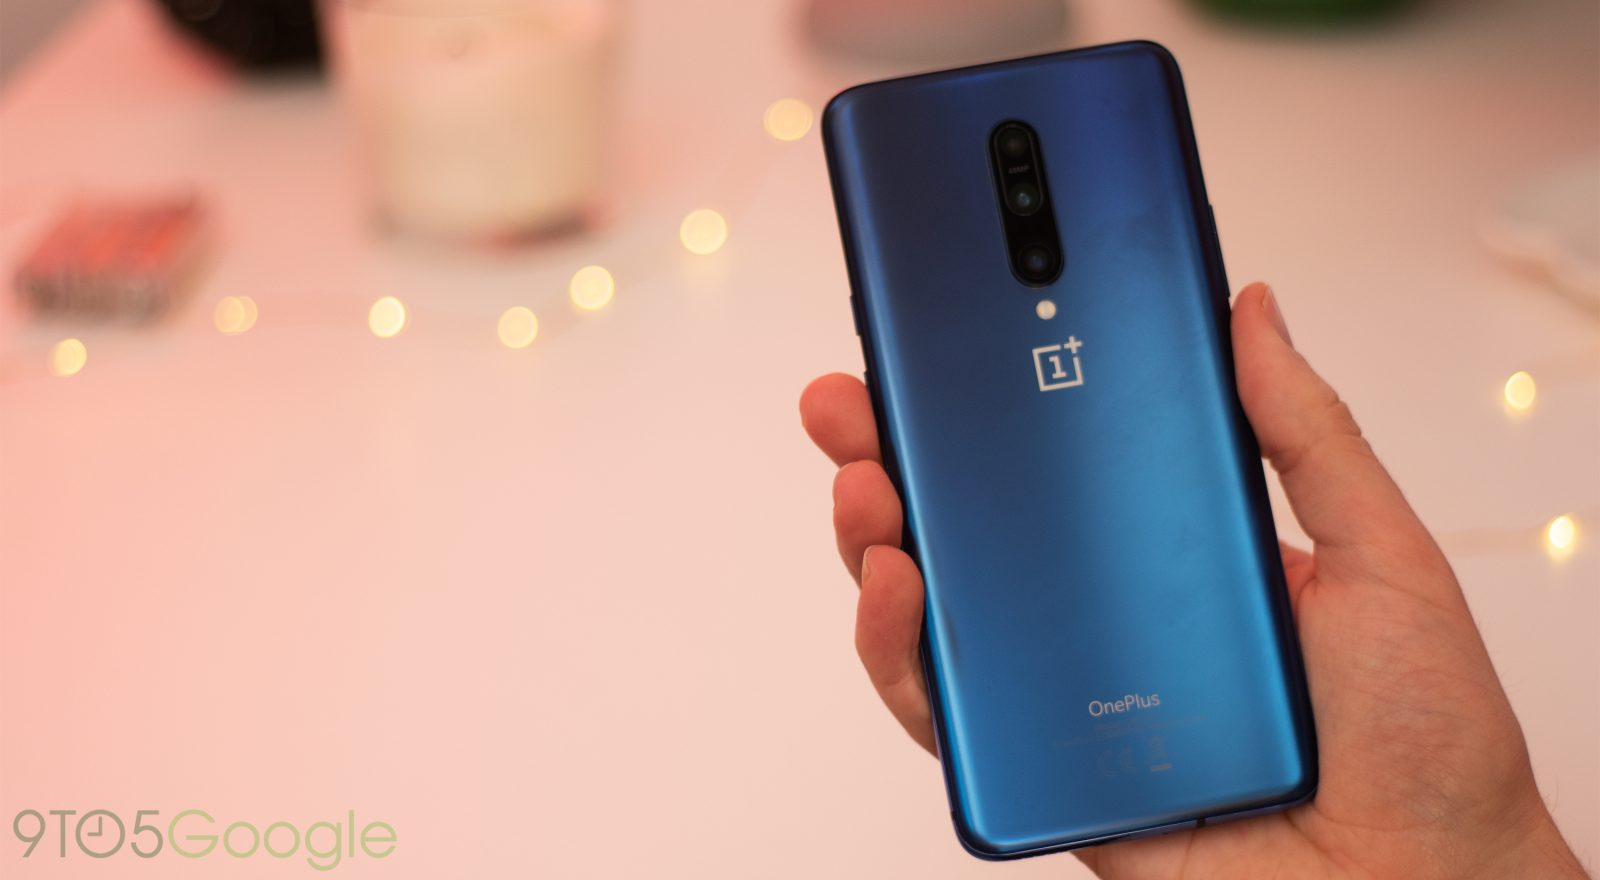 OxygenOS 9.5.5 update turns up on the OnePlus 7 Pro 5G